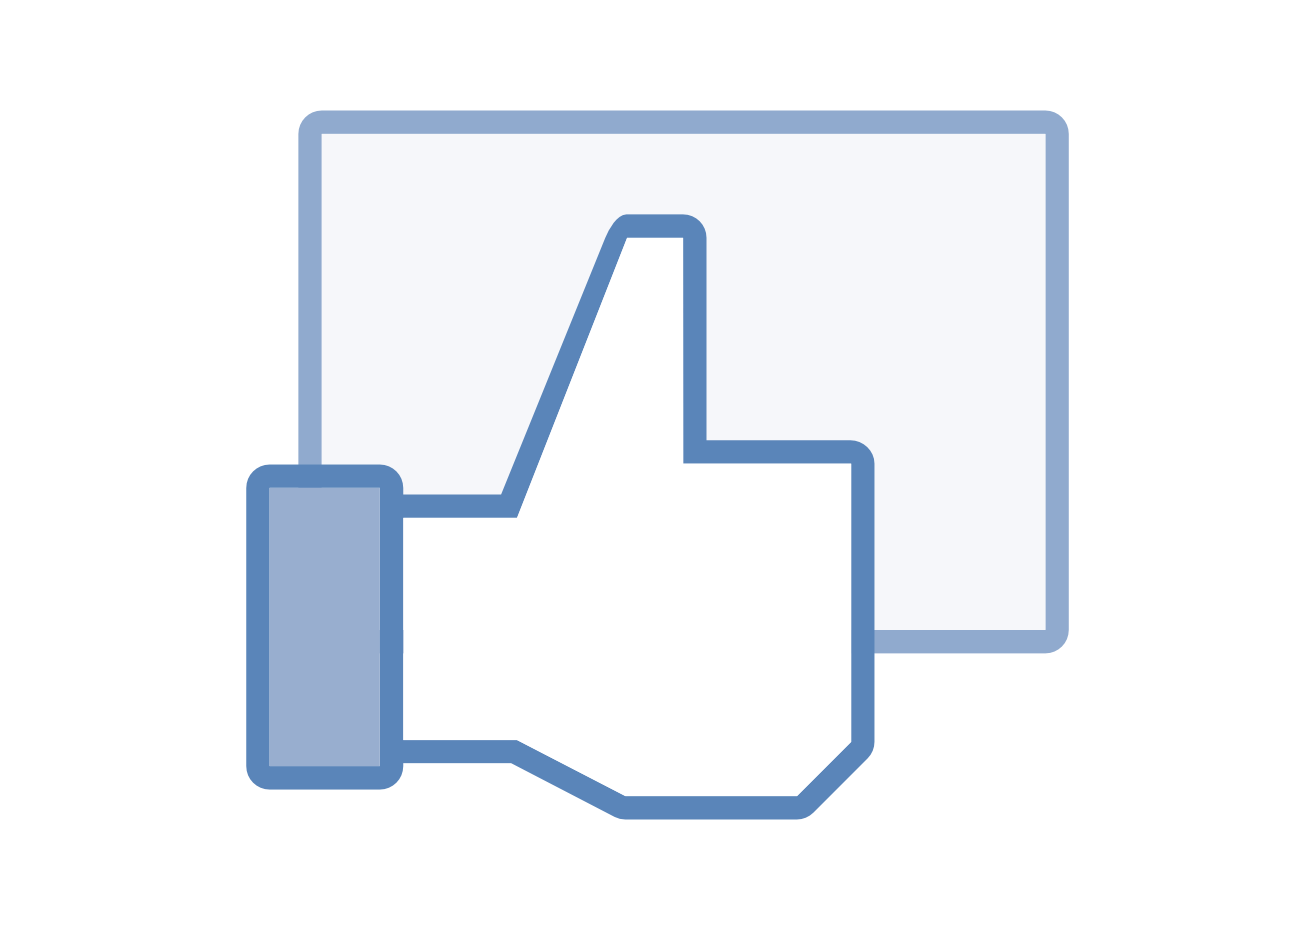 Facebook like icon png transparent. Free icons and backgrounds